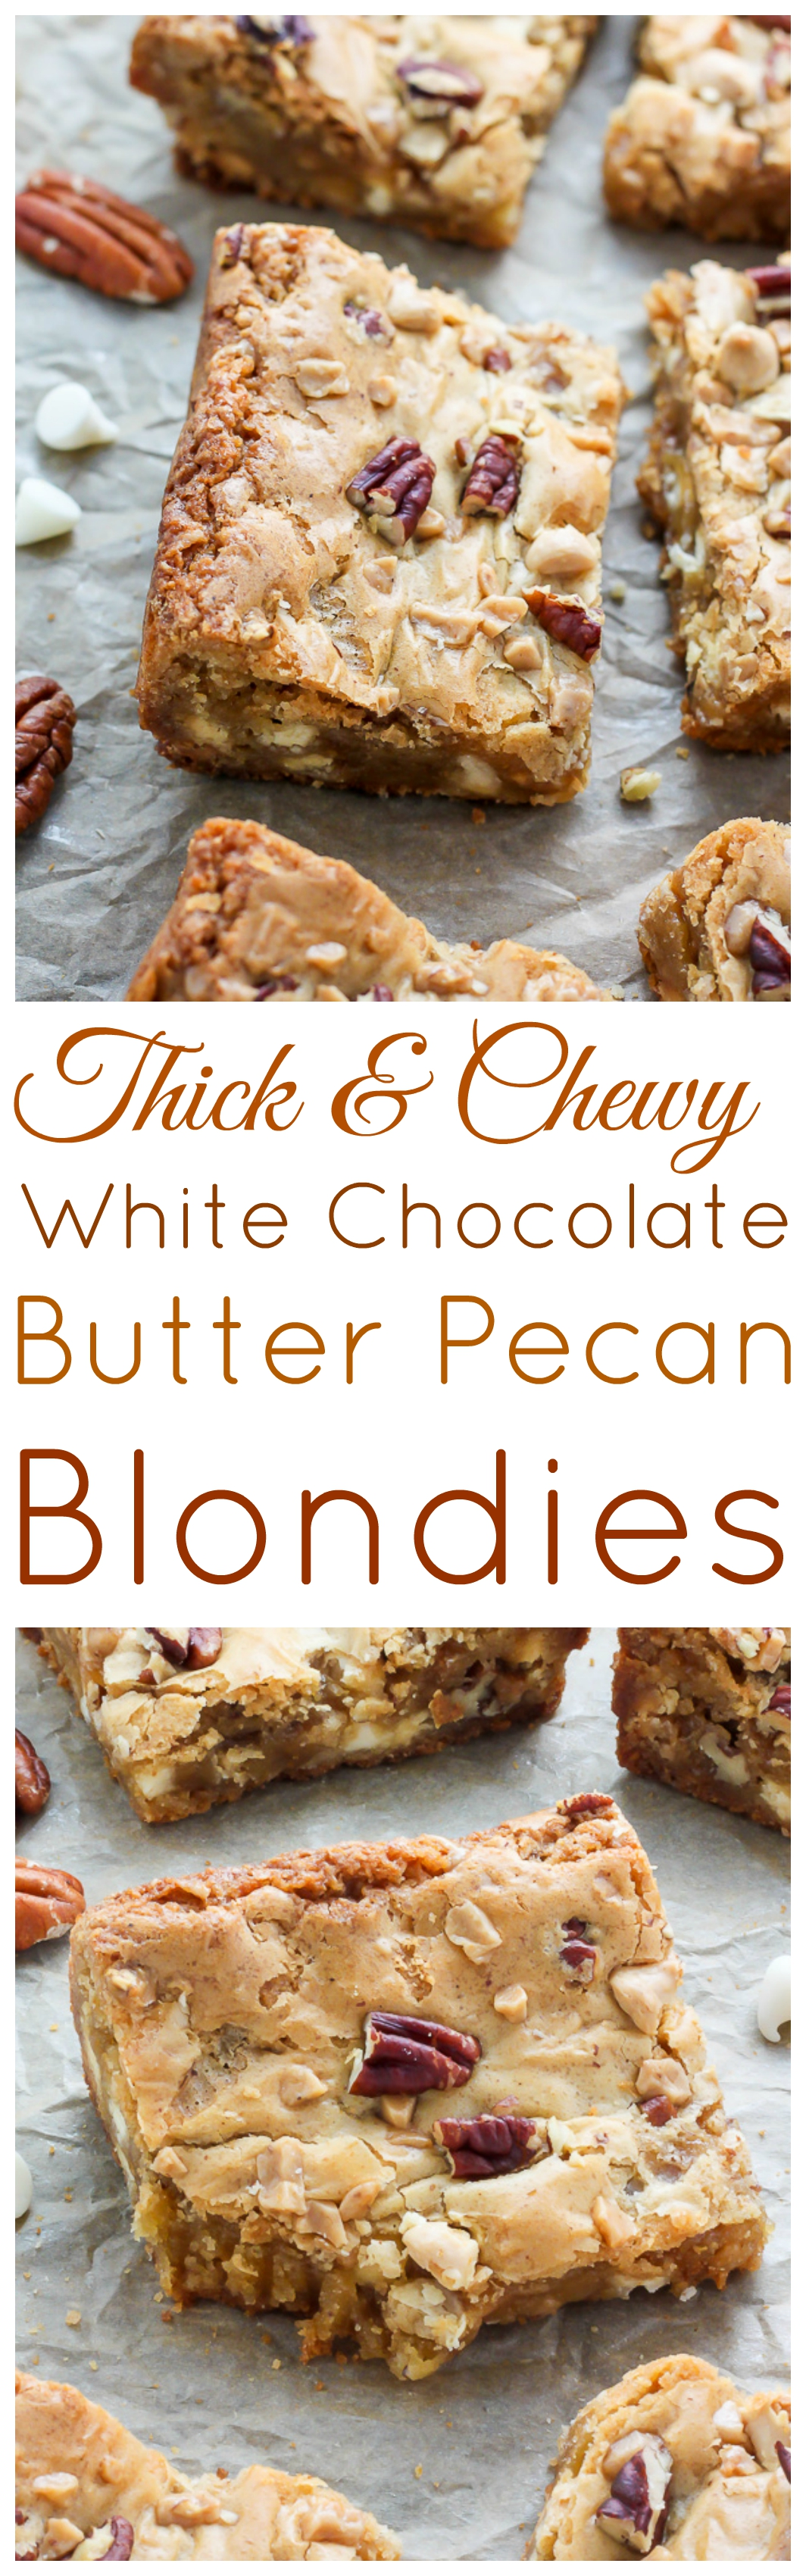 White Chocolate Butter Pecan Blondies - Baker by Nature